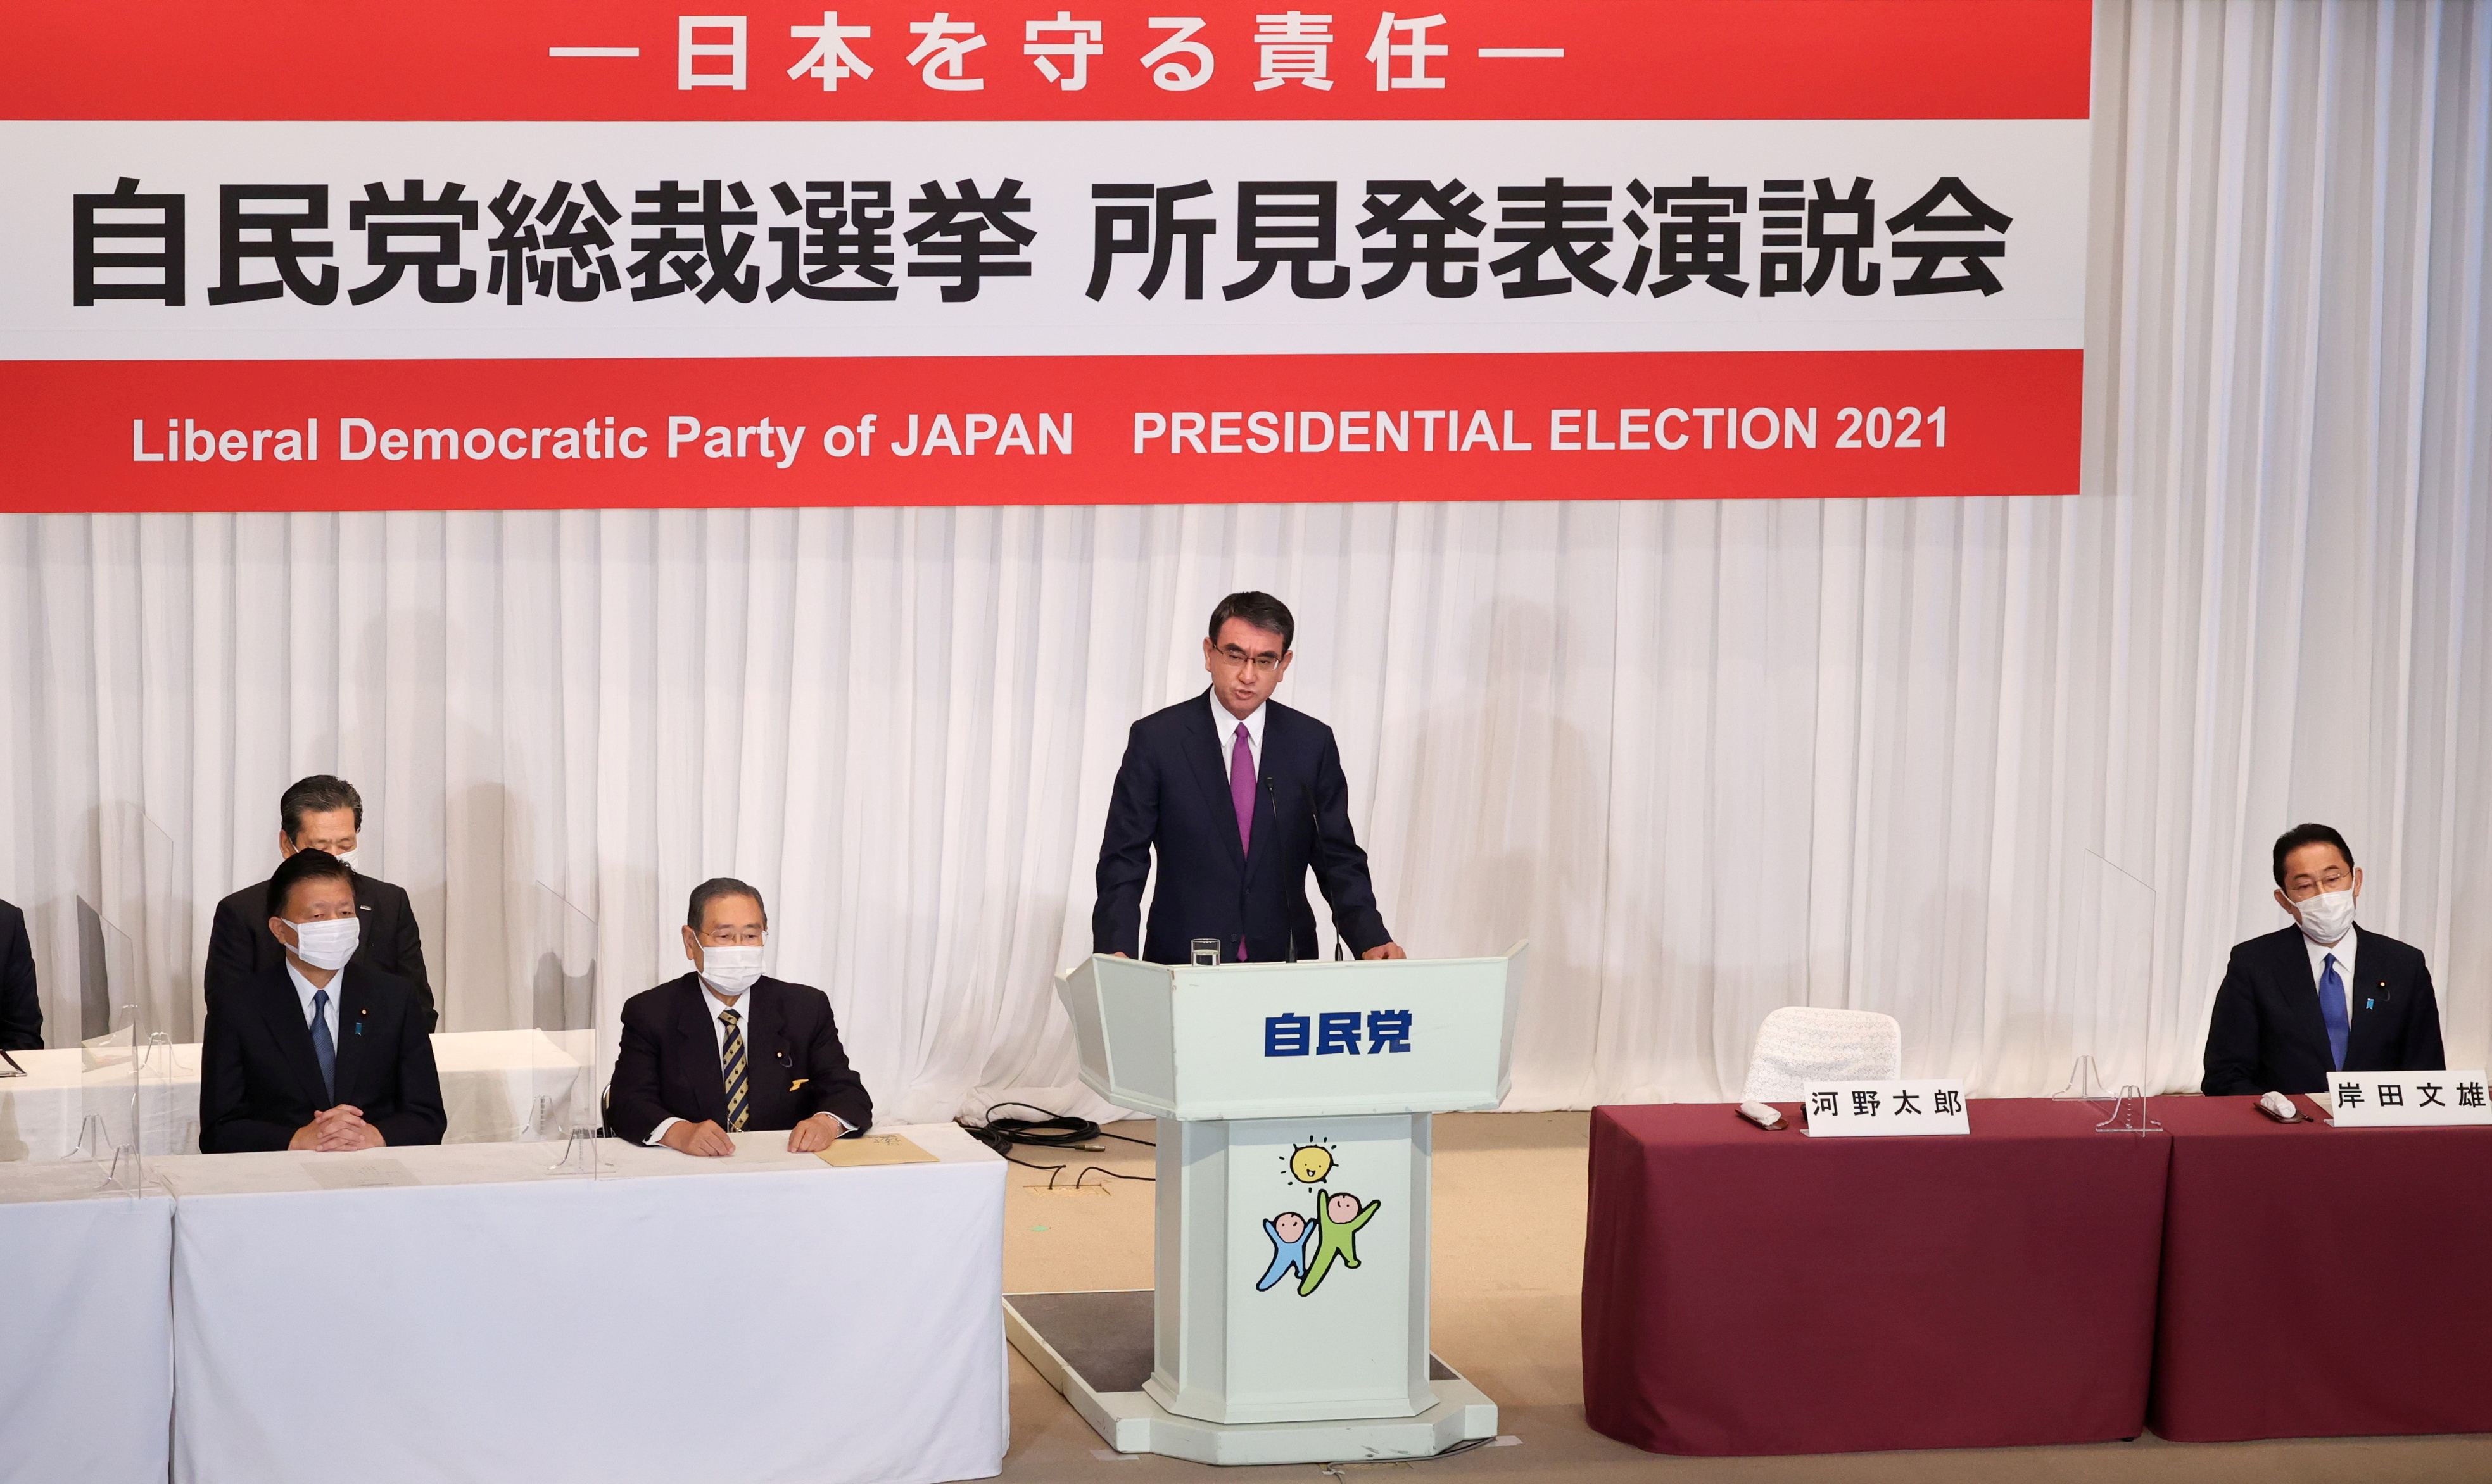 Japan's Administrative Reform Minister Taro Kono, candidate of the ruling Liberal Democratic Party (LDP) presidential election, delivers a campaign speech, while another candidate former Japanese Foreign Minister Fumio Kishida listens, during a joint news conference in Tokyo, Japan September 17, 2021.  Yoshikazu Tsuno/Pool via REUTERS